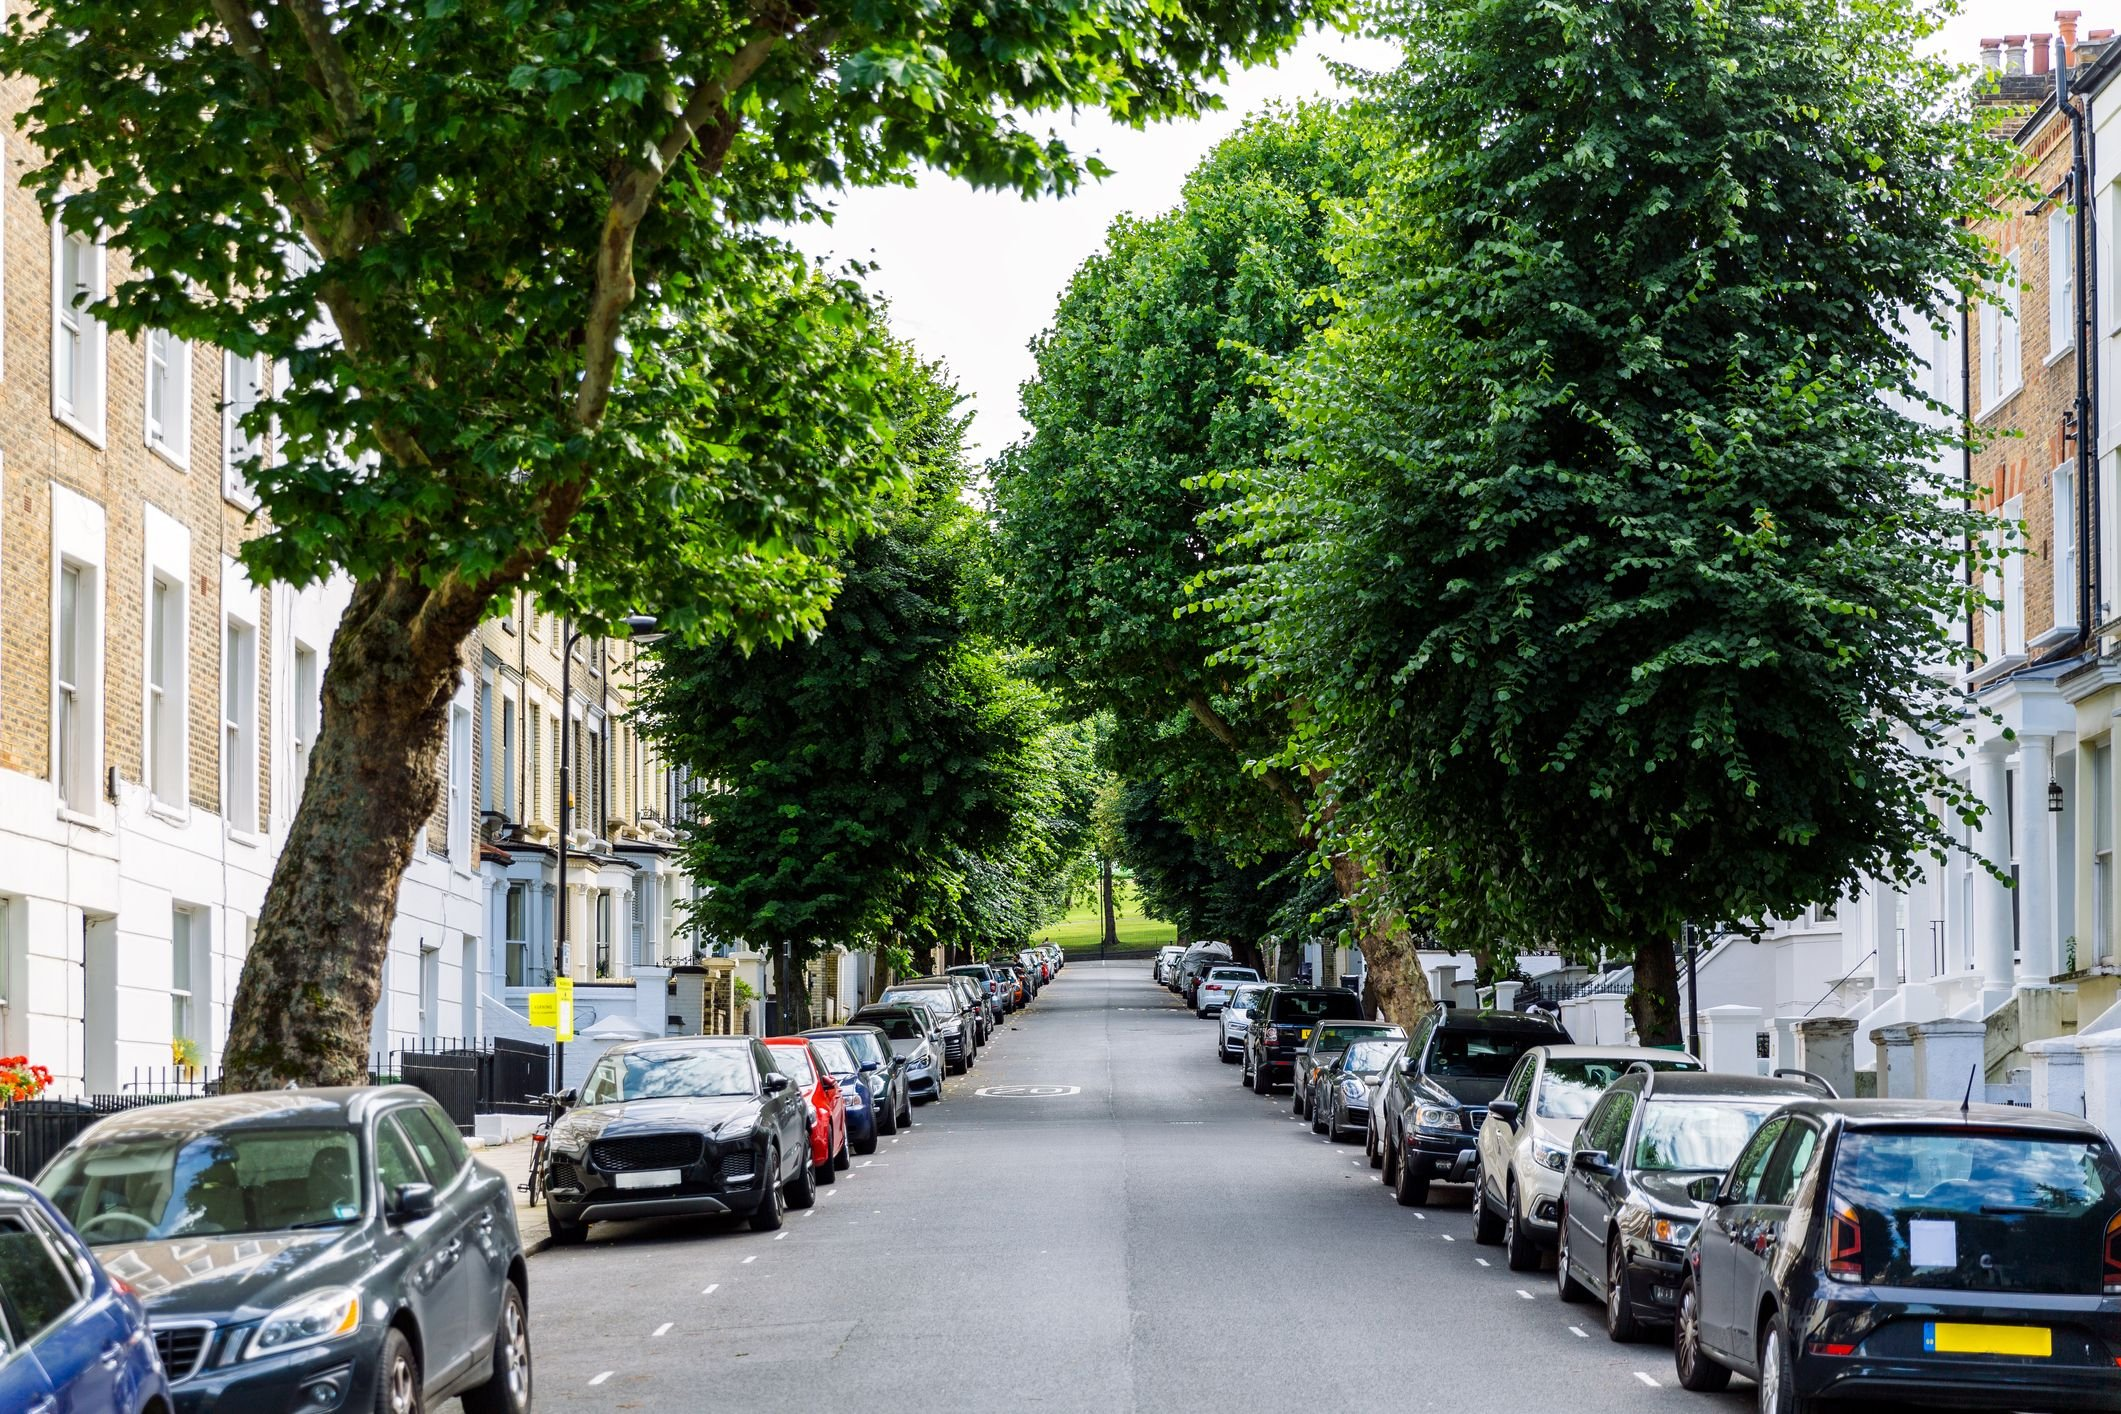 A street full of cars   Photo: Getty Images